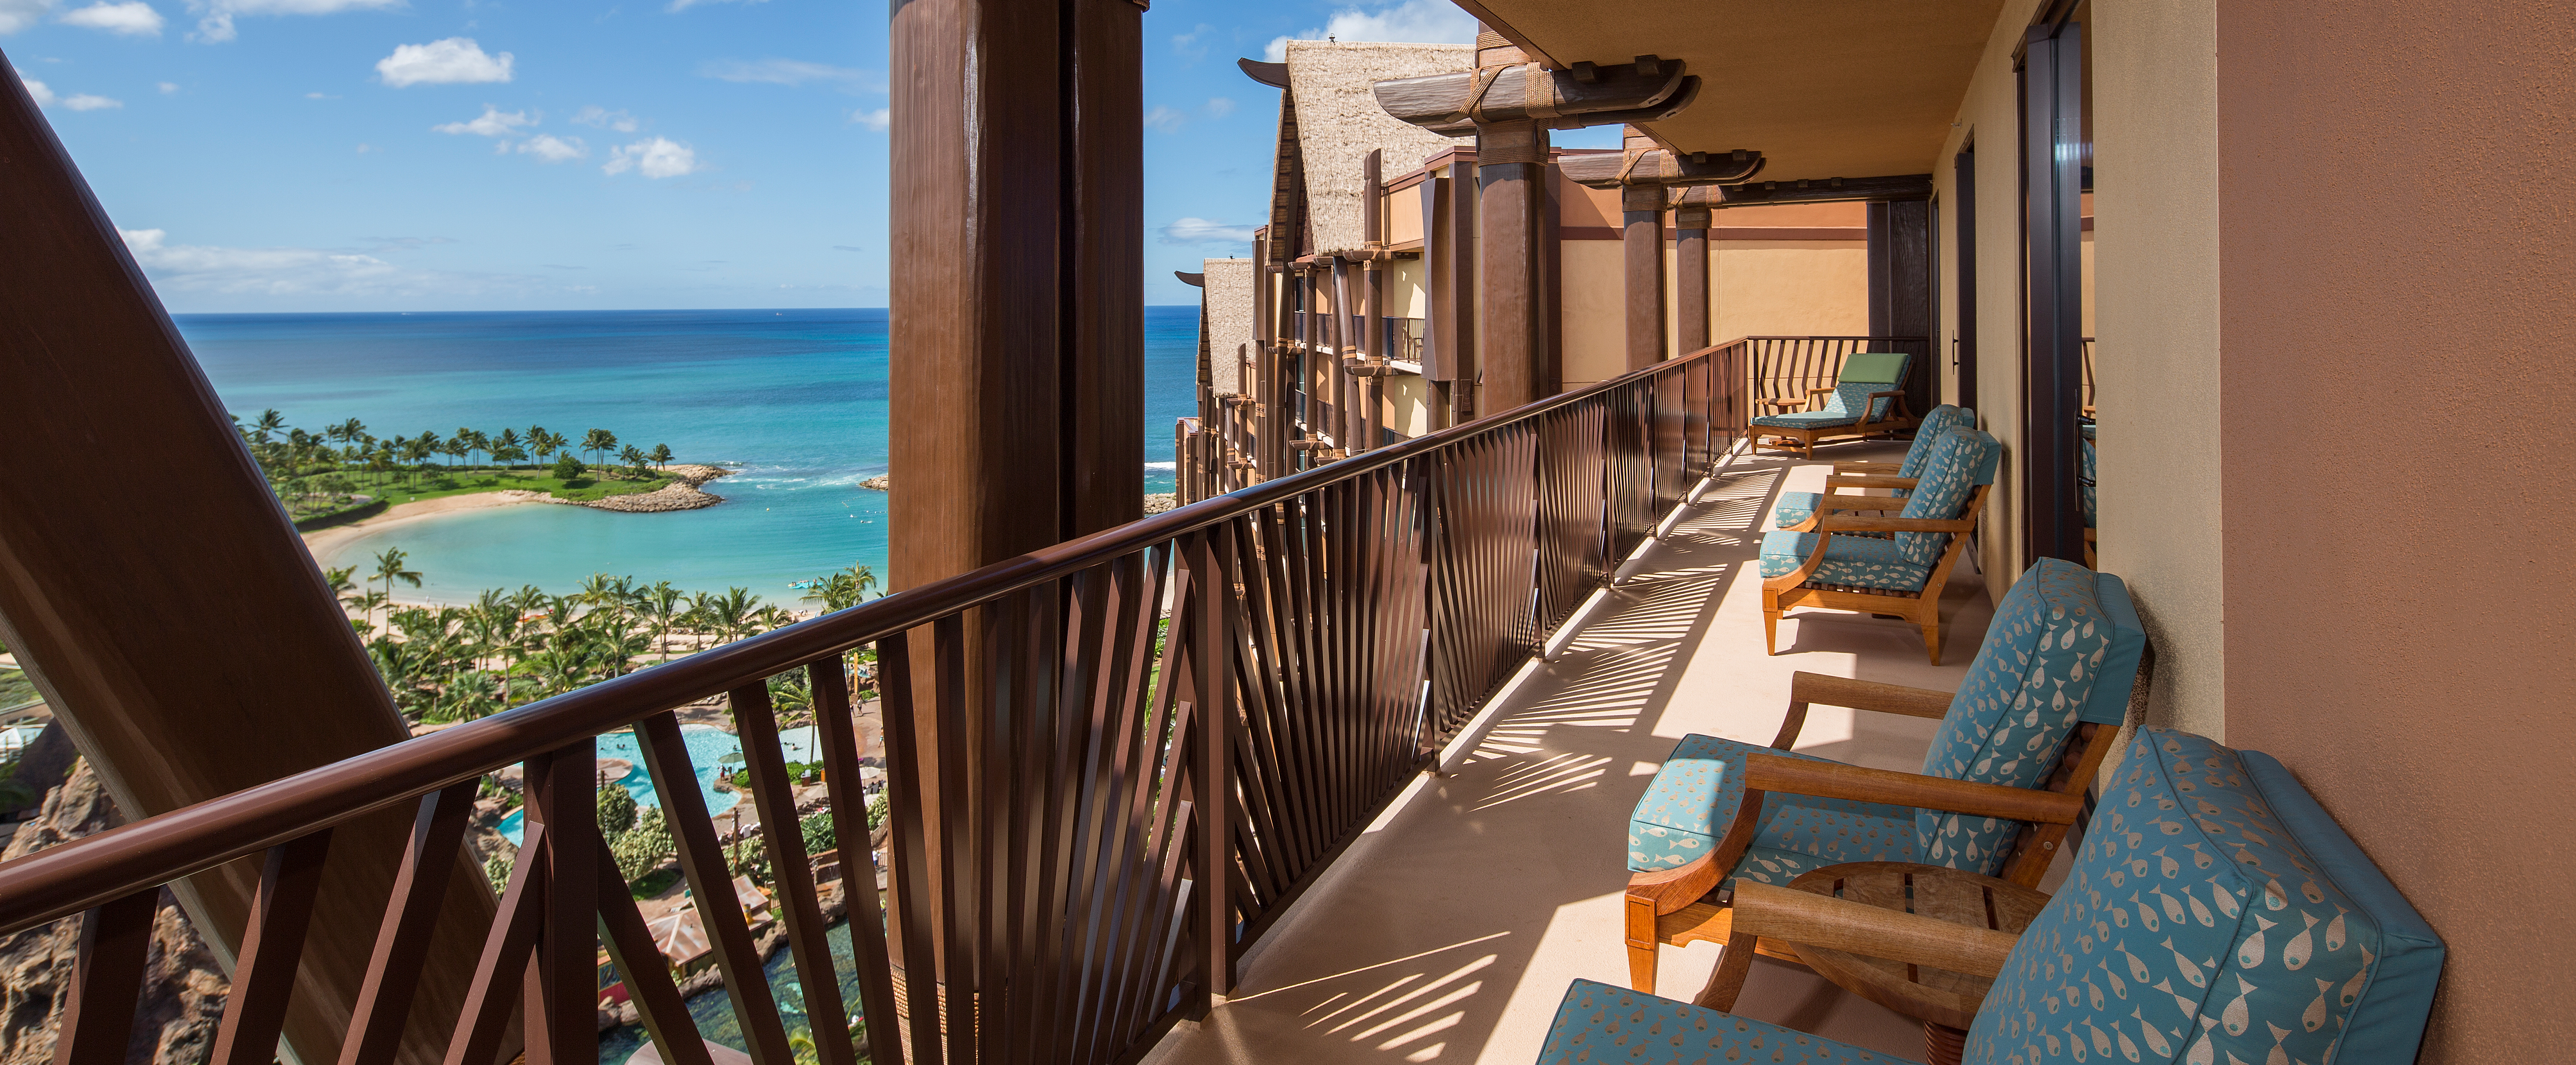 Lei Hulu Suite Select Suites Offer Partial Or Full Ocean